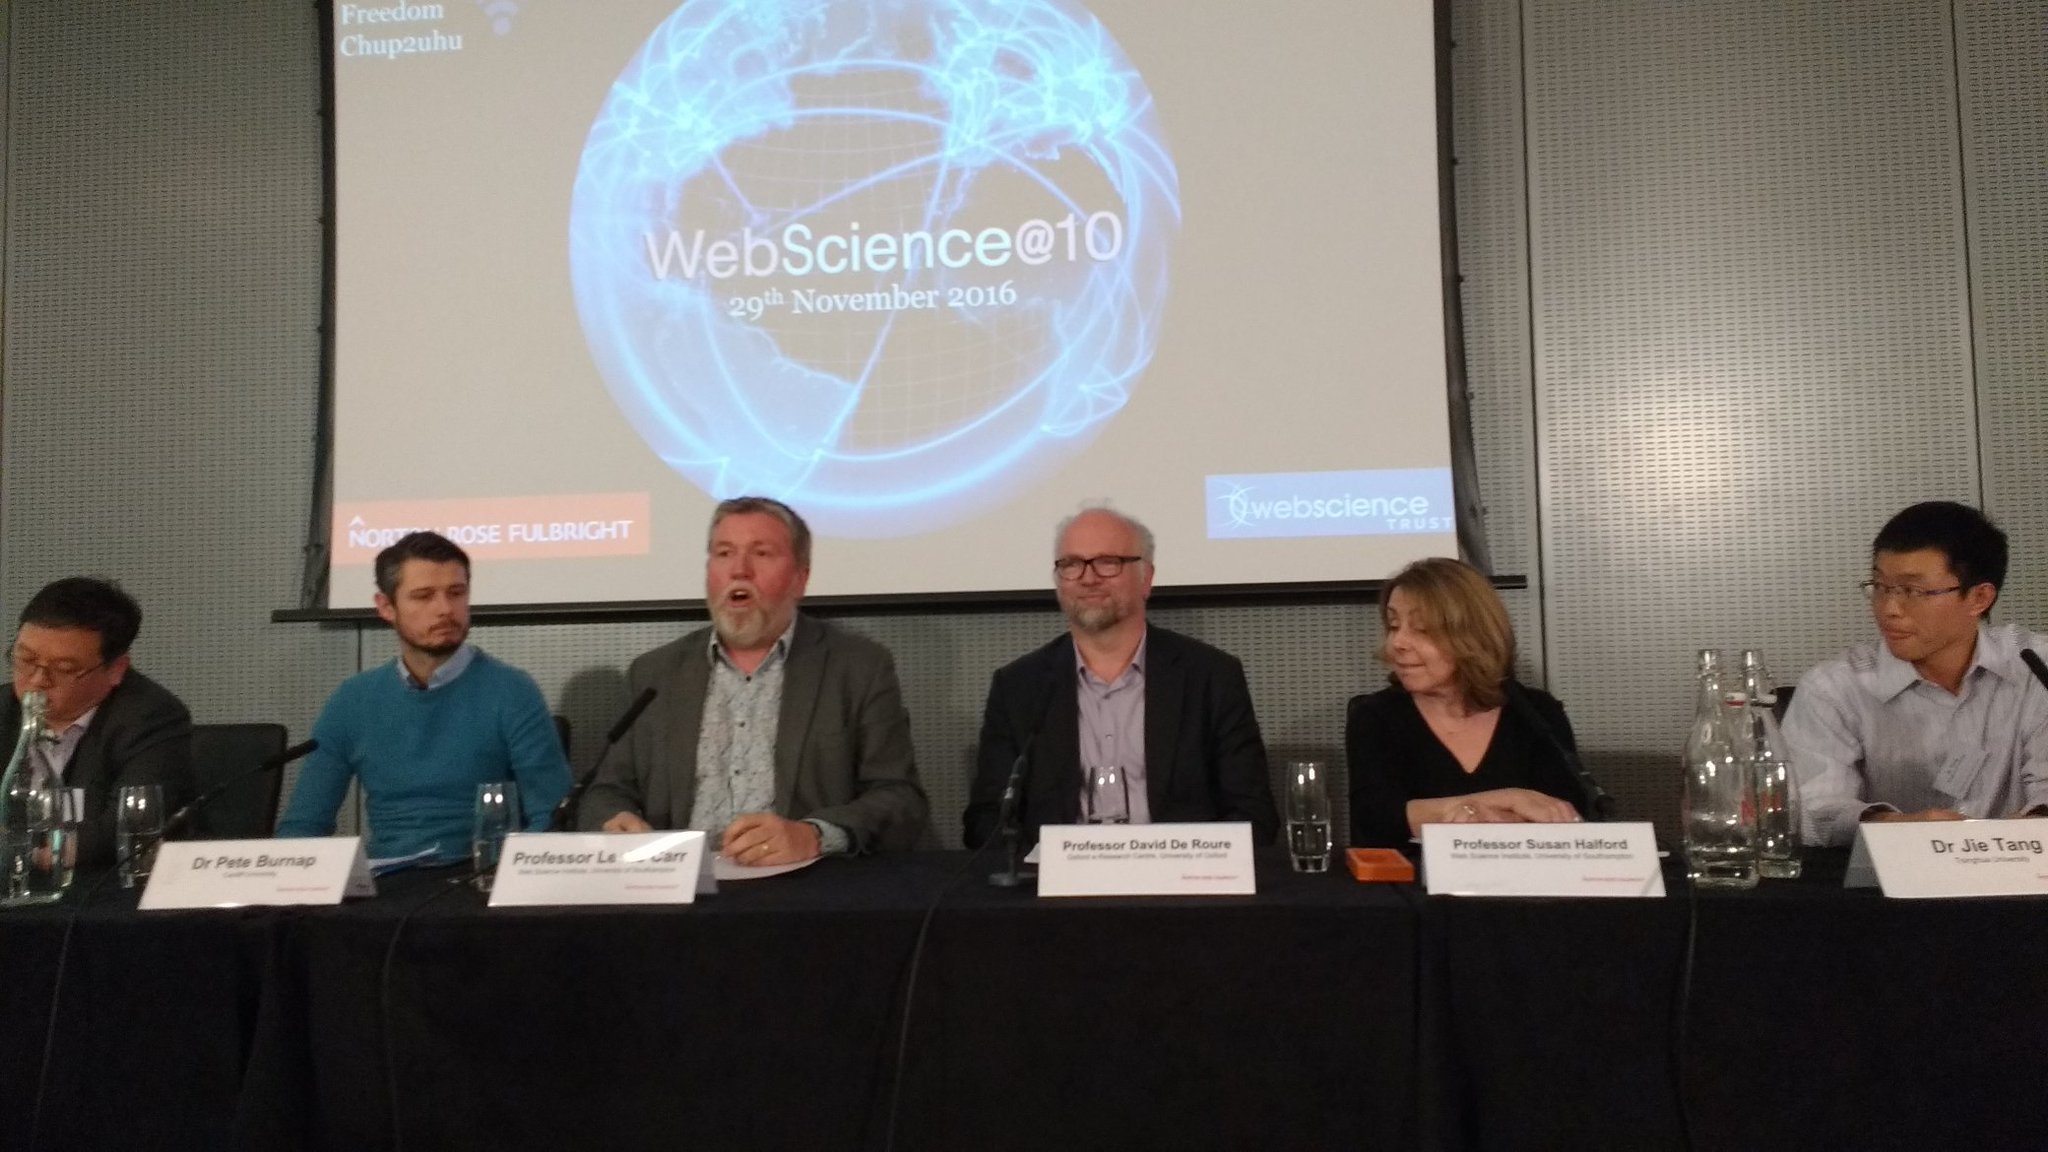 Panel 2 - web science at cutting edge - research from labs at #websci10 starts now! https://t.co/TOg4hPZ21l